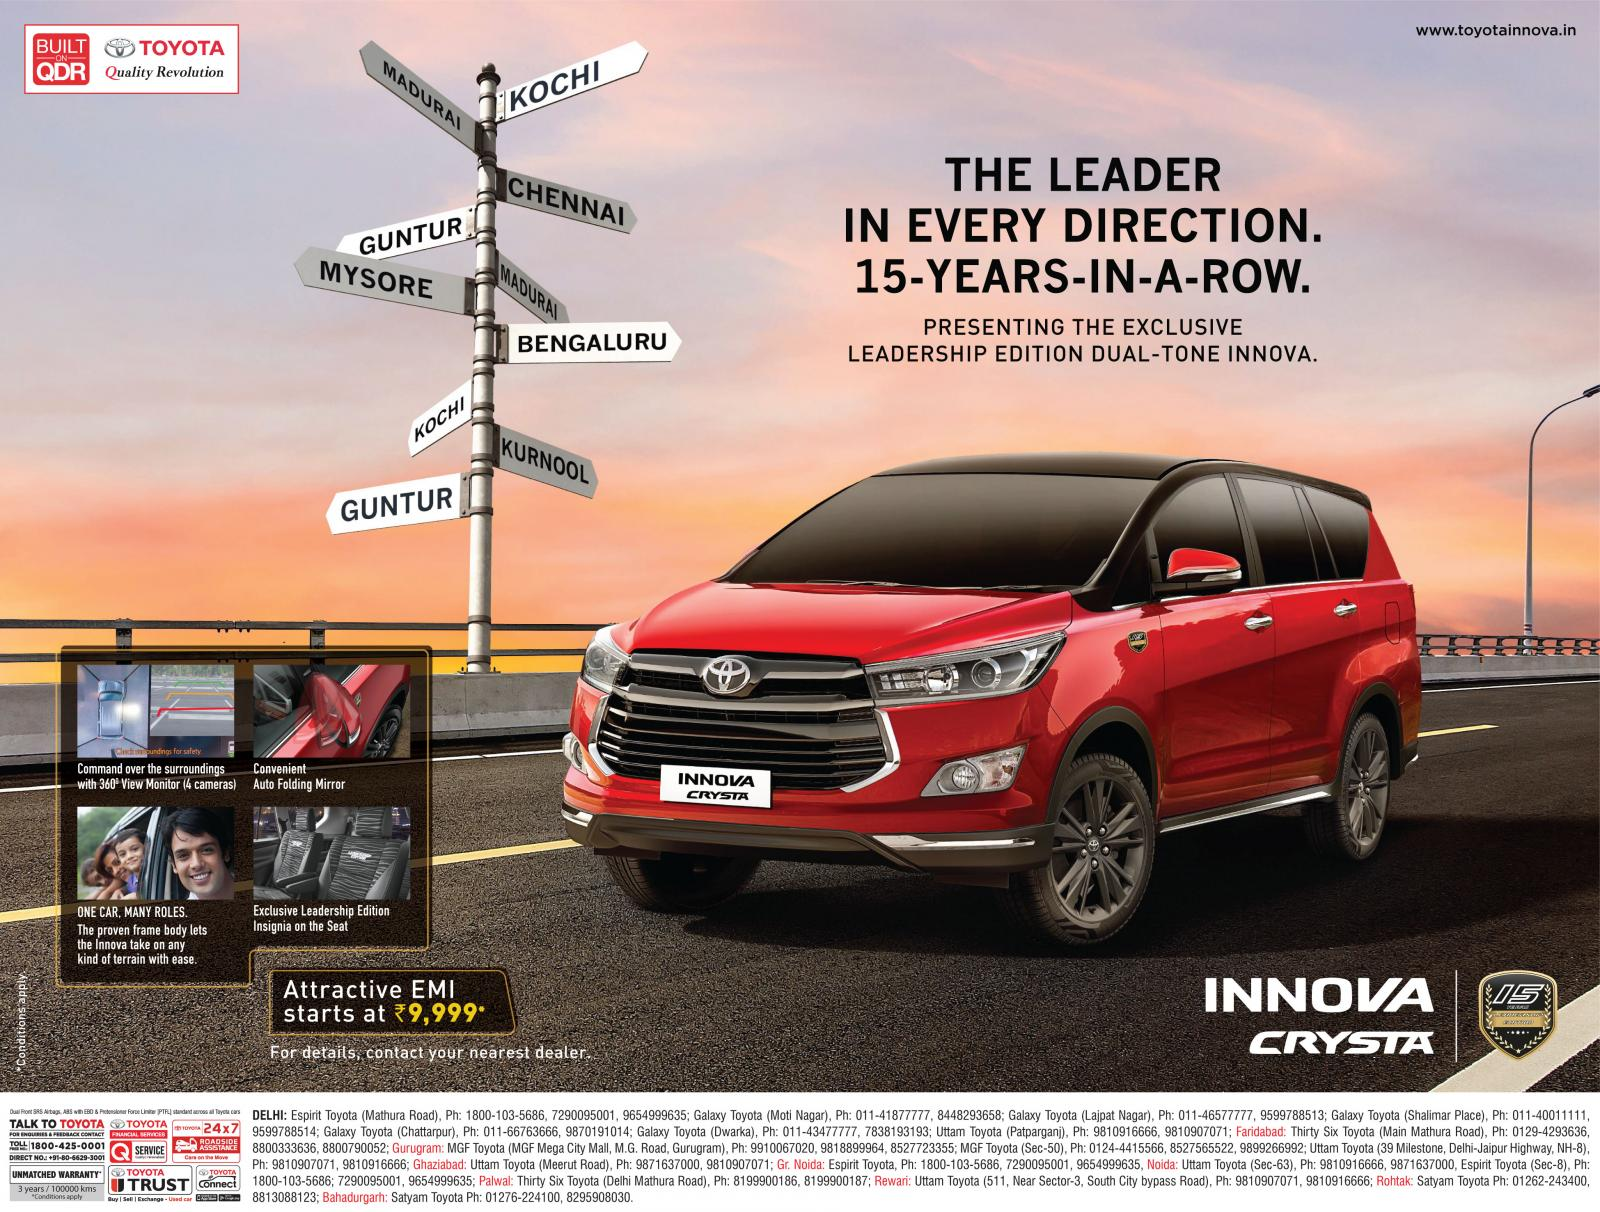 Toyota Cars Available At Attractive Finance Schemes In India